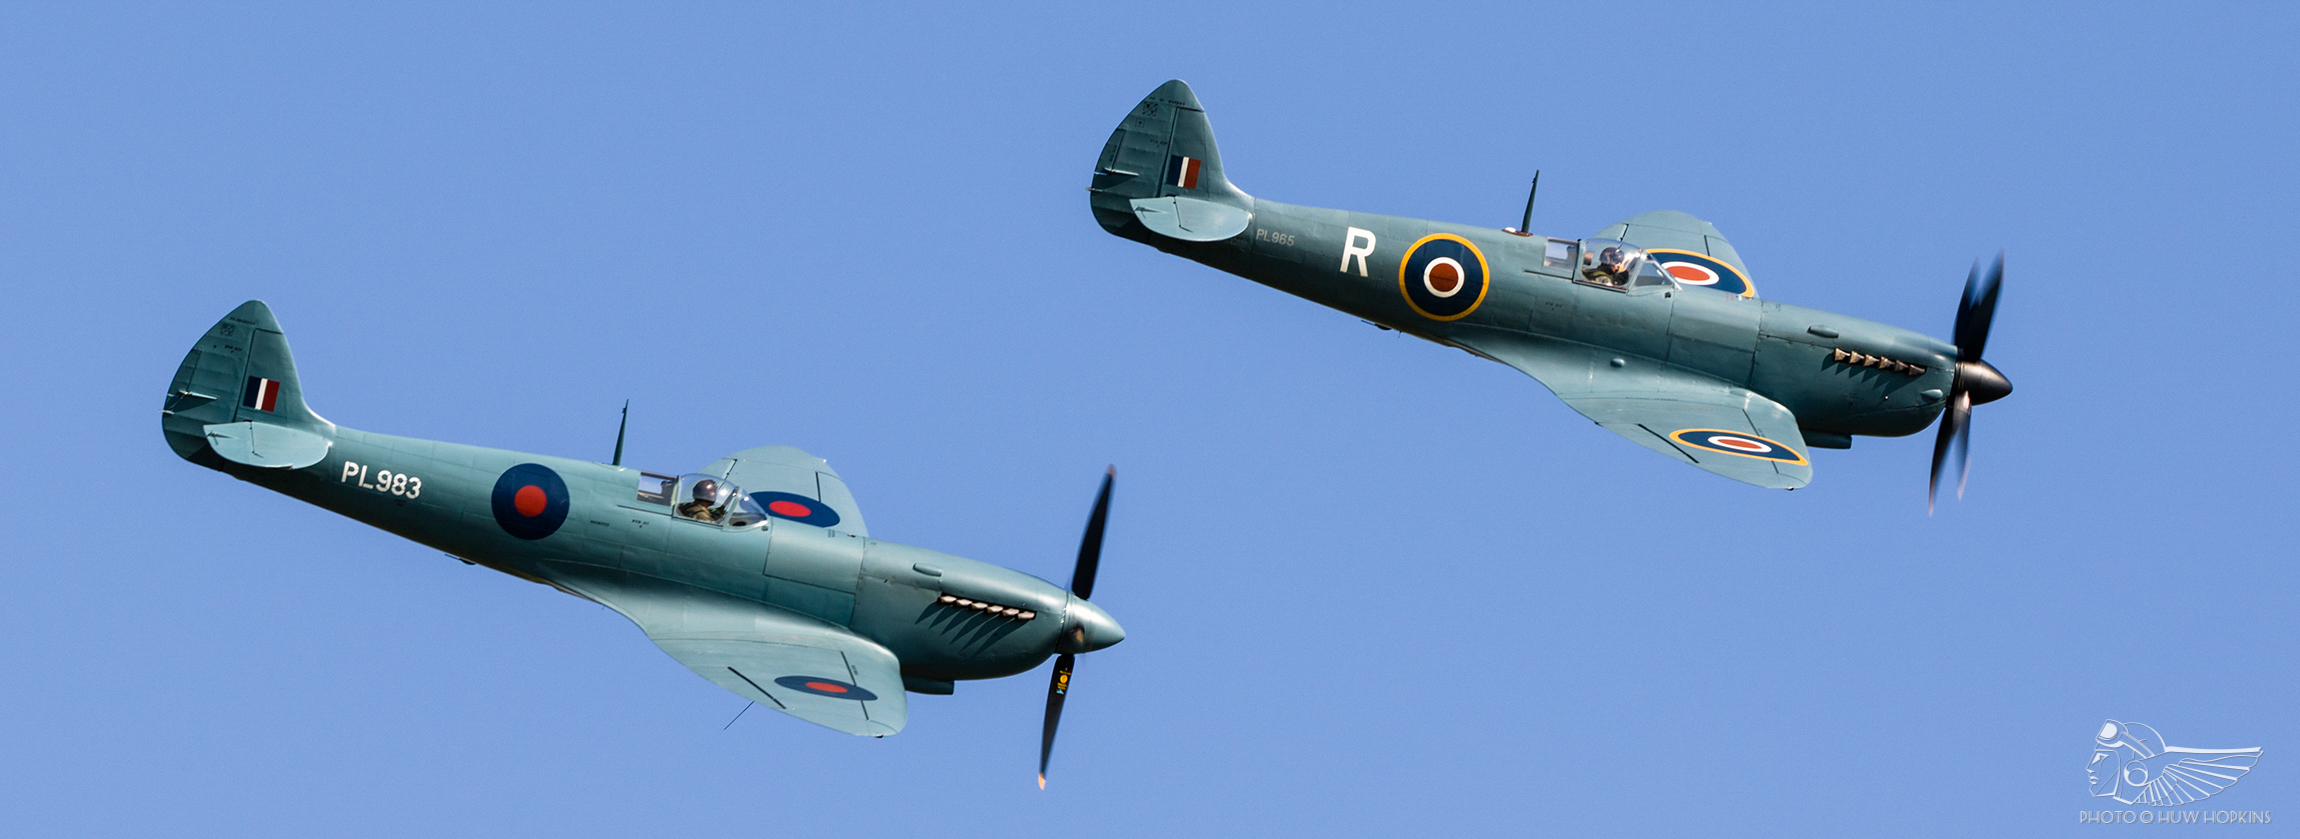 PR.XI Spitfires snap up the limelight at Shuttleworth